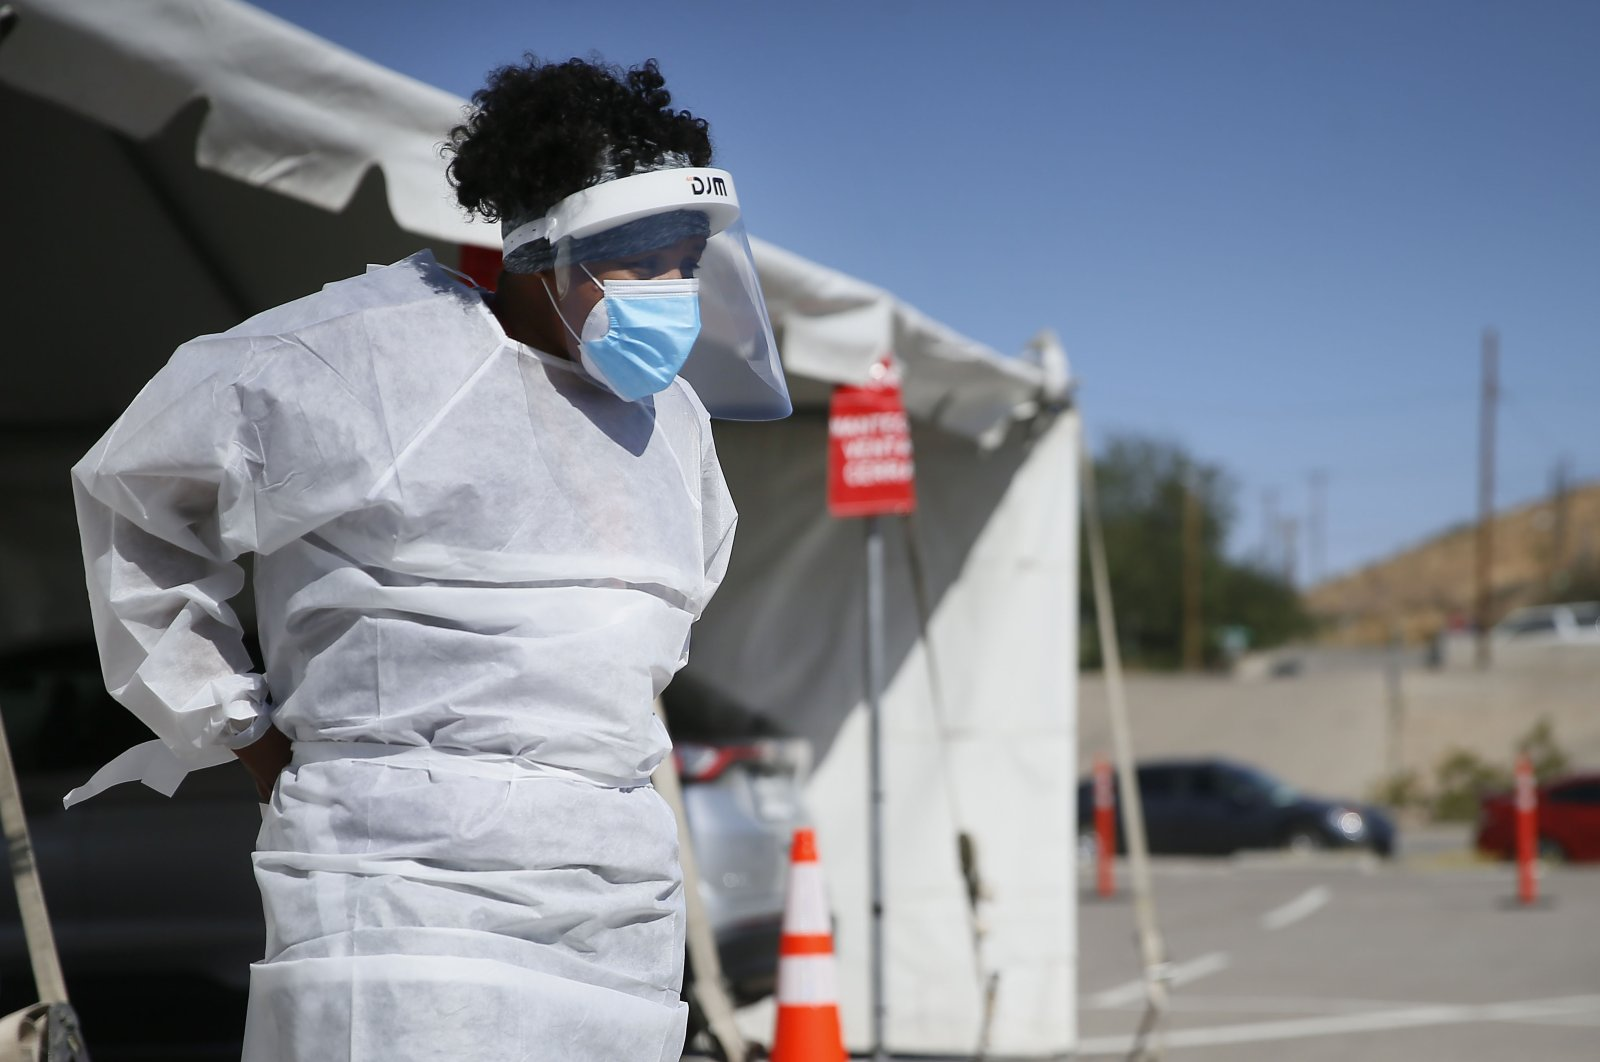 A medical worker stands at a COVID-19 state drive-thru testing site at UTEP, in El Paso, Texas, Oct. 26,2020. (The El Paso Times via AP)